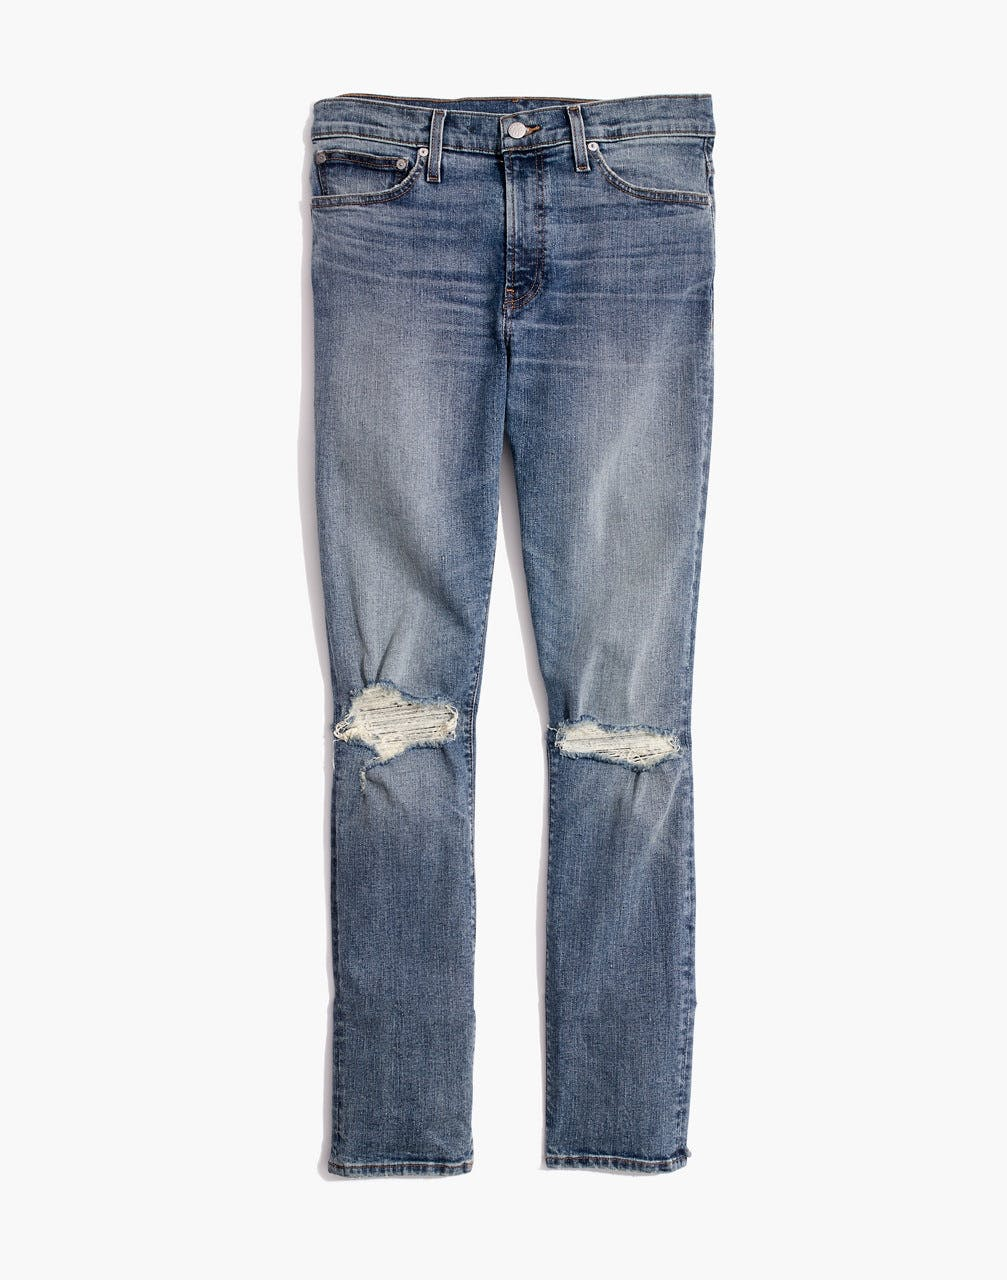 madewell, madewell jeans, madewell denim, jeans, denim, skinny jeans, denimblog, denim blog, jeansblog, jeans blog, distressed jeans, vintage jeans, skinny jeans, skinny denim, skinny, distressed denim, lighwash denim, lightwash jeans